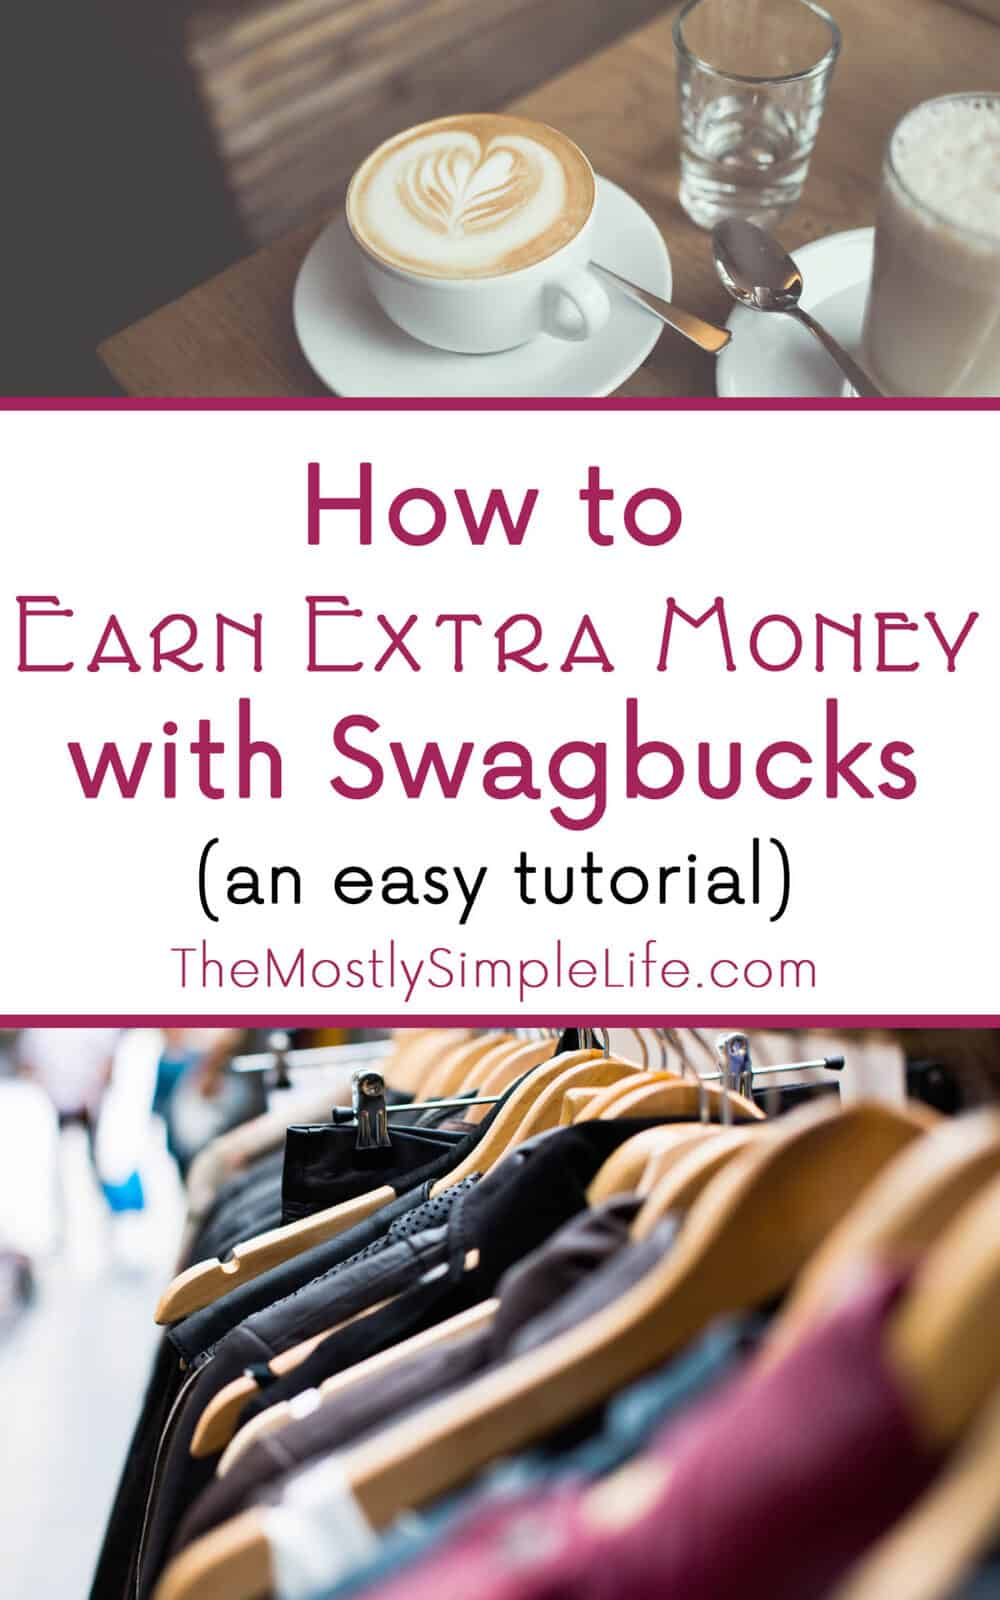 How to Earn Extra Money with Swagbucks - The (mostly) Simple